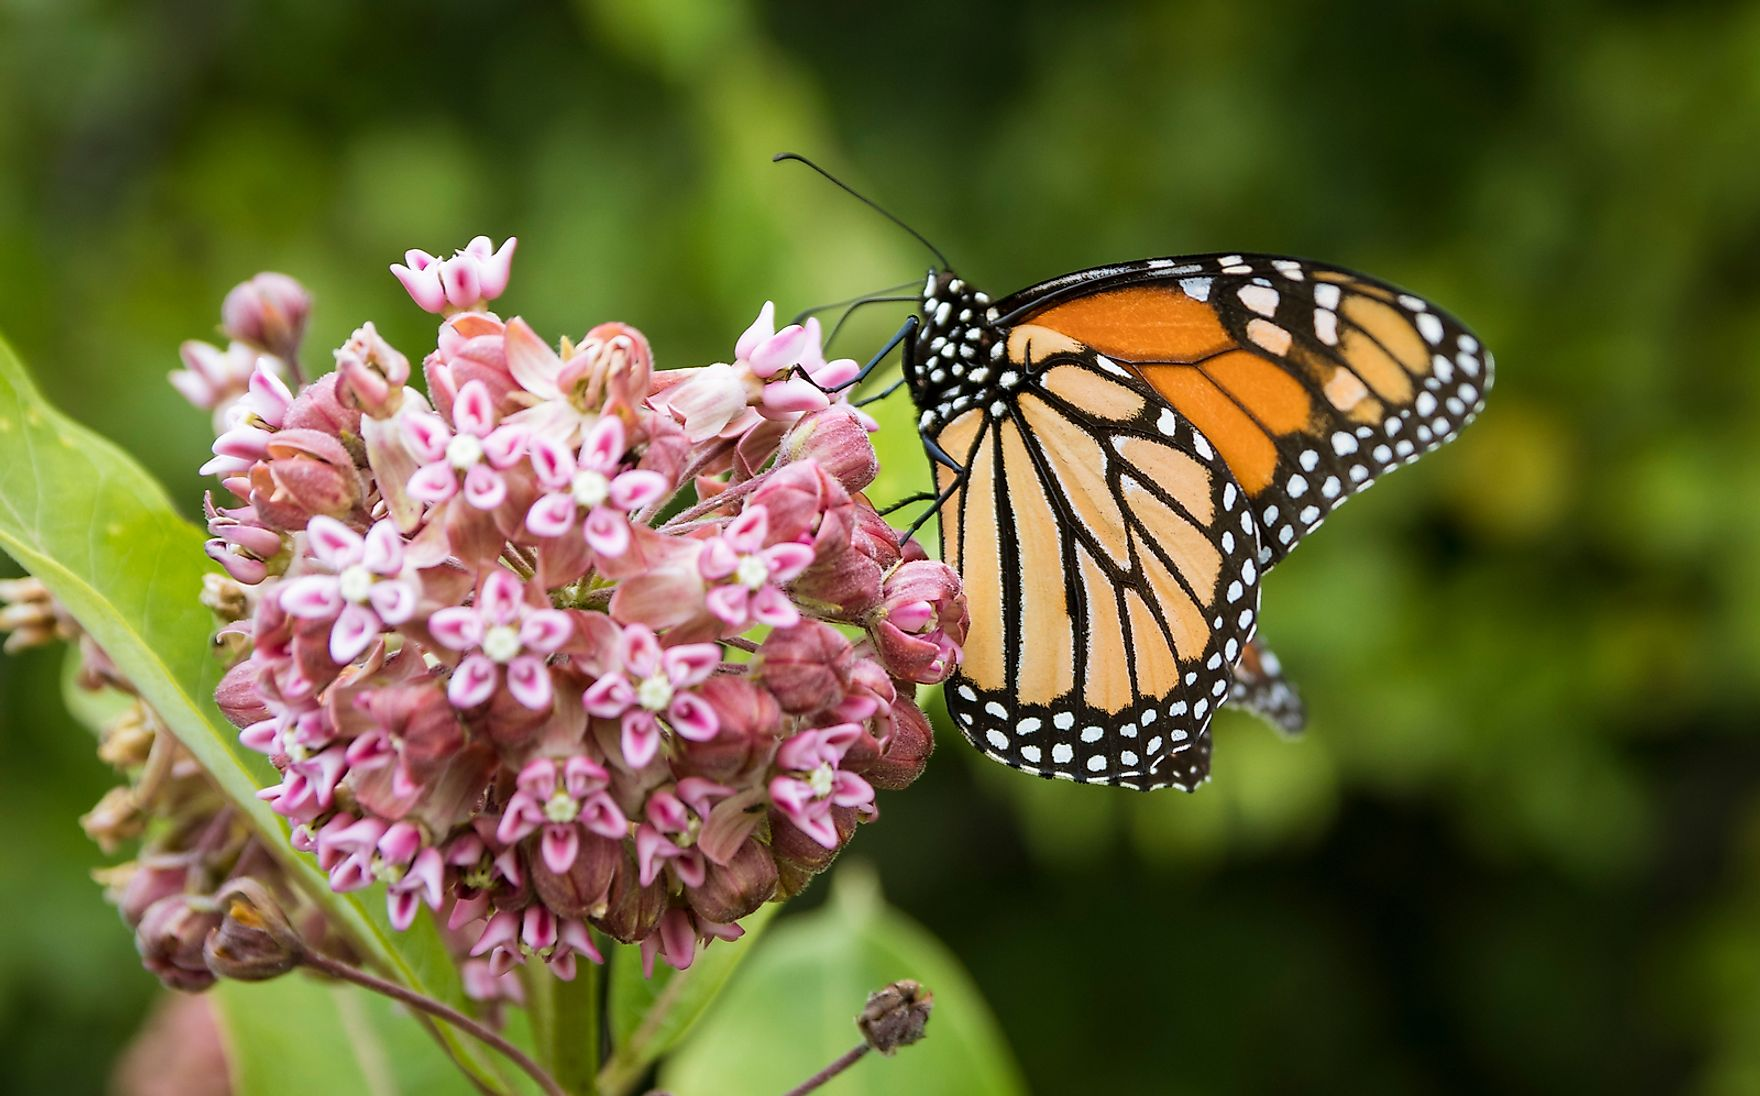 Monarch butterflies and milkweed are an example of commensalism.